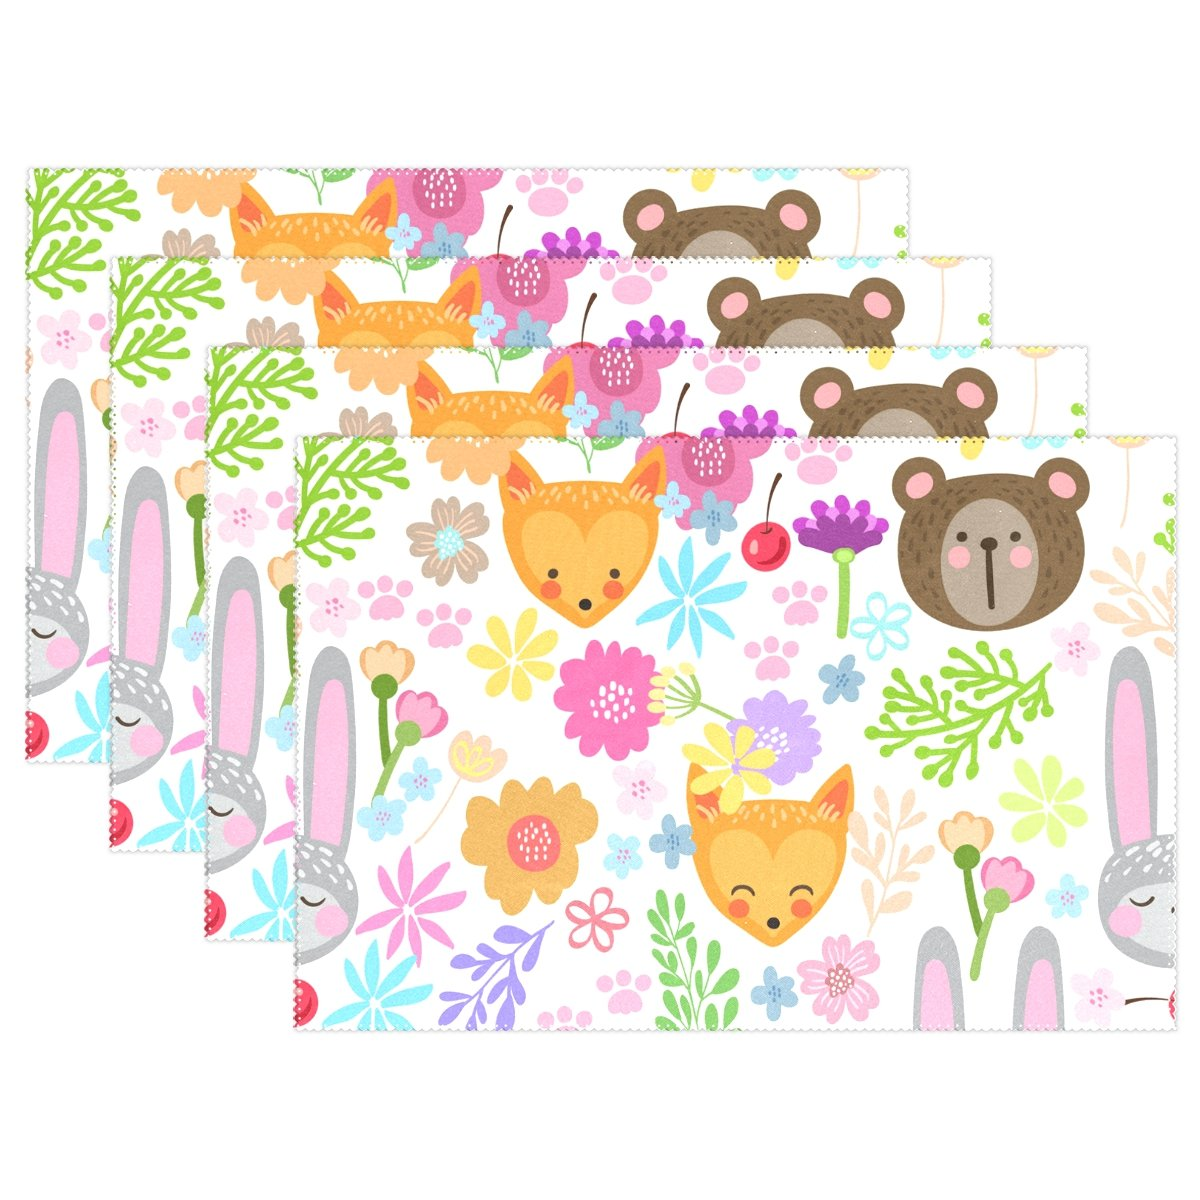 Top Carpenter Cute Animals And Flower Doodle Place Mats Washable Heat Resistant Polyester Table Mats 12'' x 18'', Set of 4